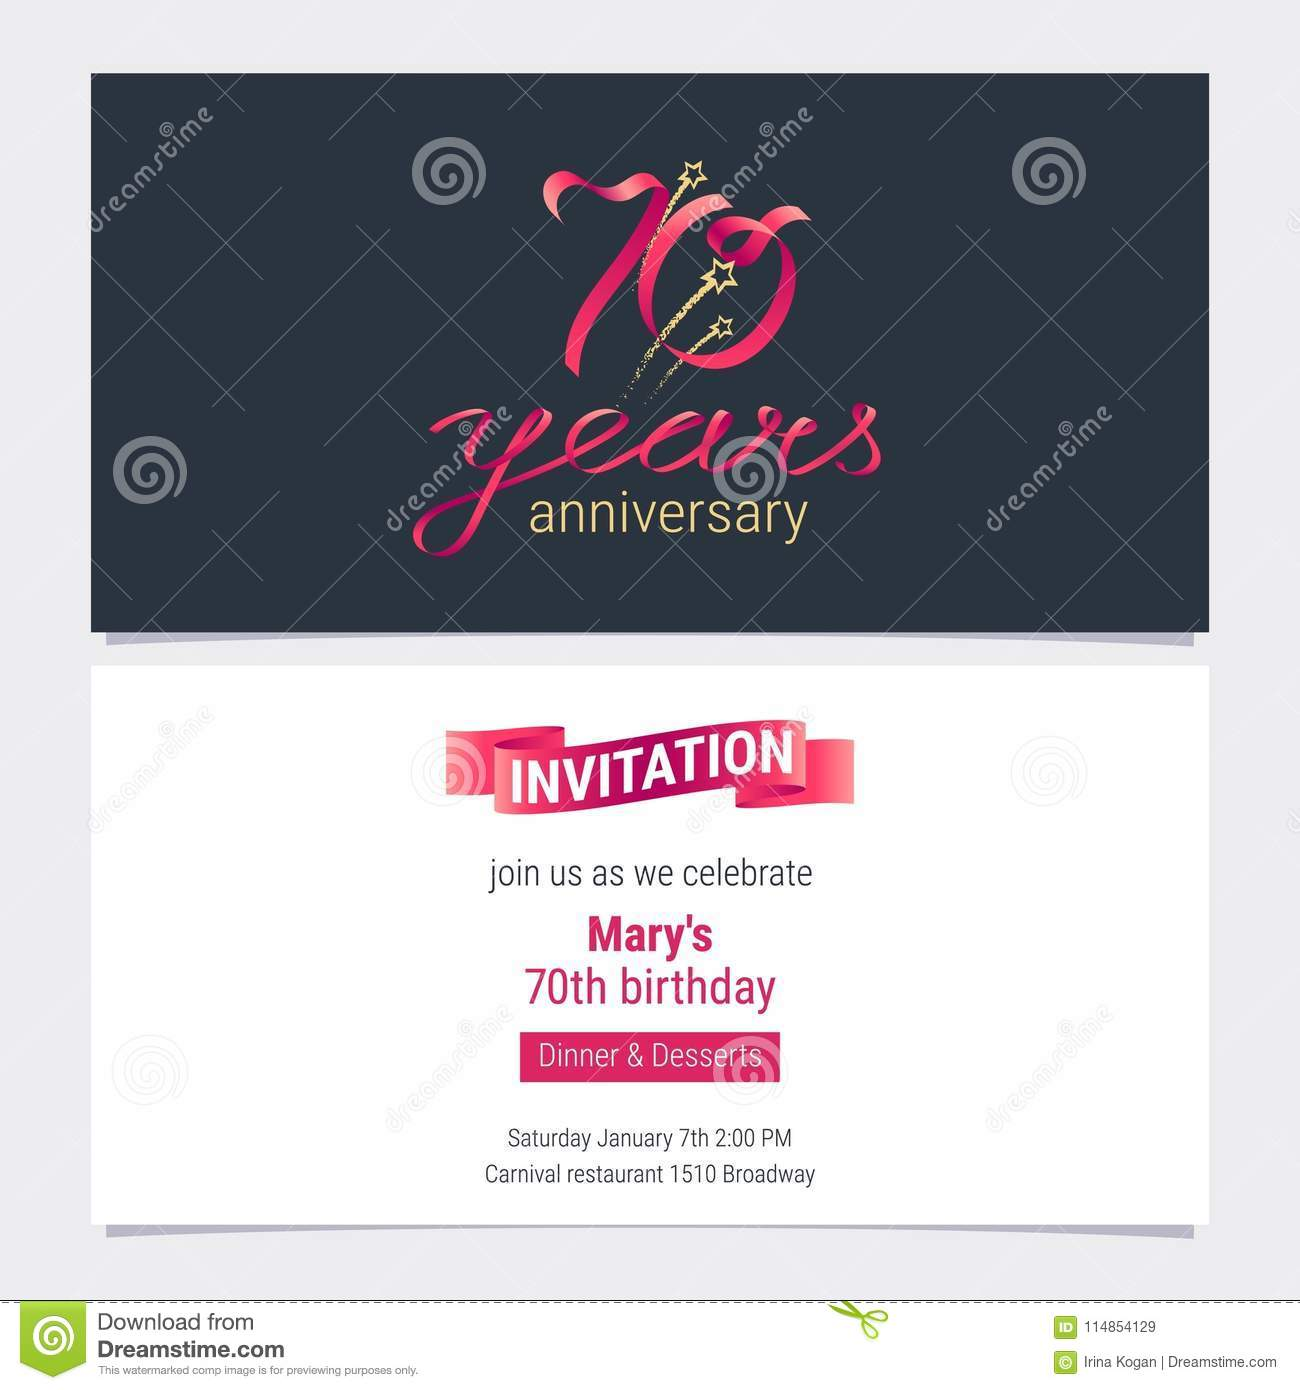 70 Years Anniversary Invite Vector Illustration Graphic Design Element For 70th Birthday Card Party Invitation